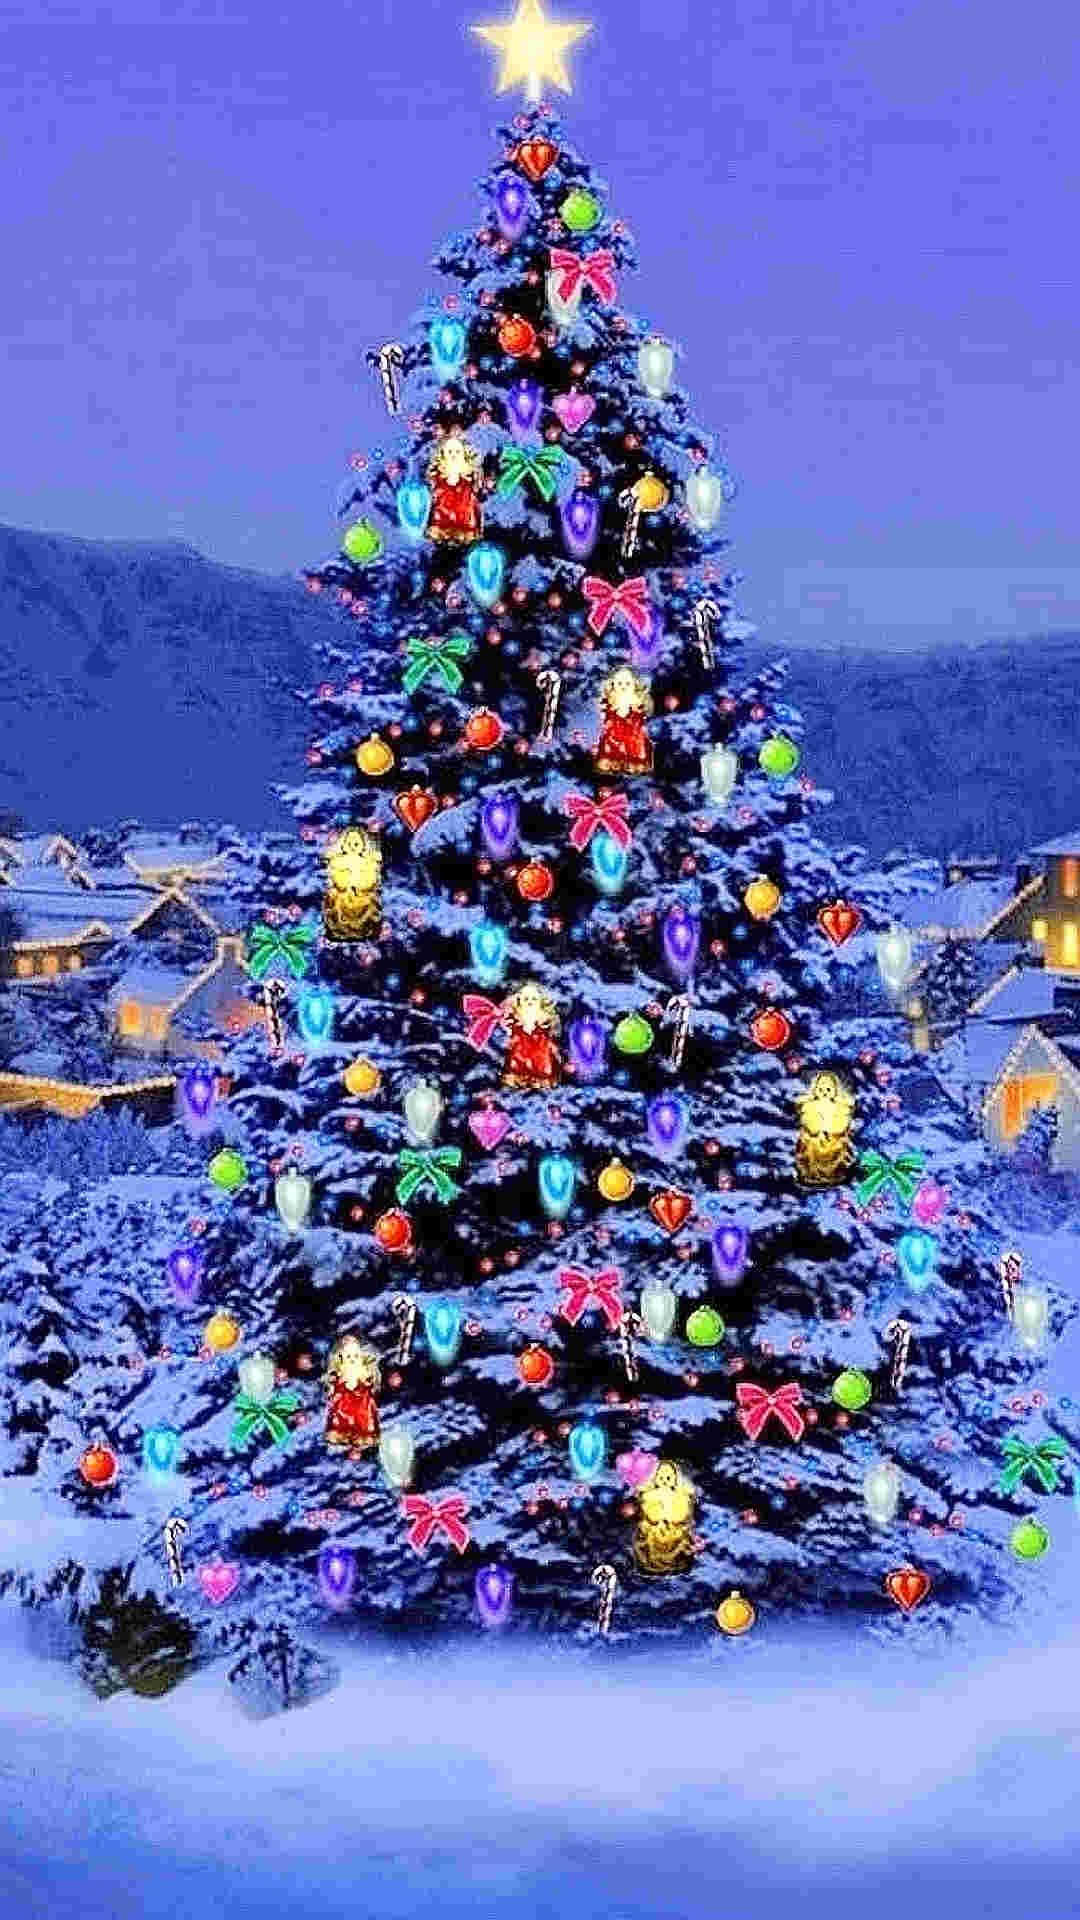 Christmas Wallpaper For Phone   31 Group Wallpapers 1080x1920